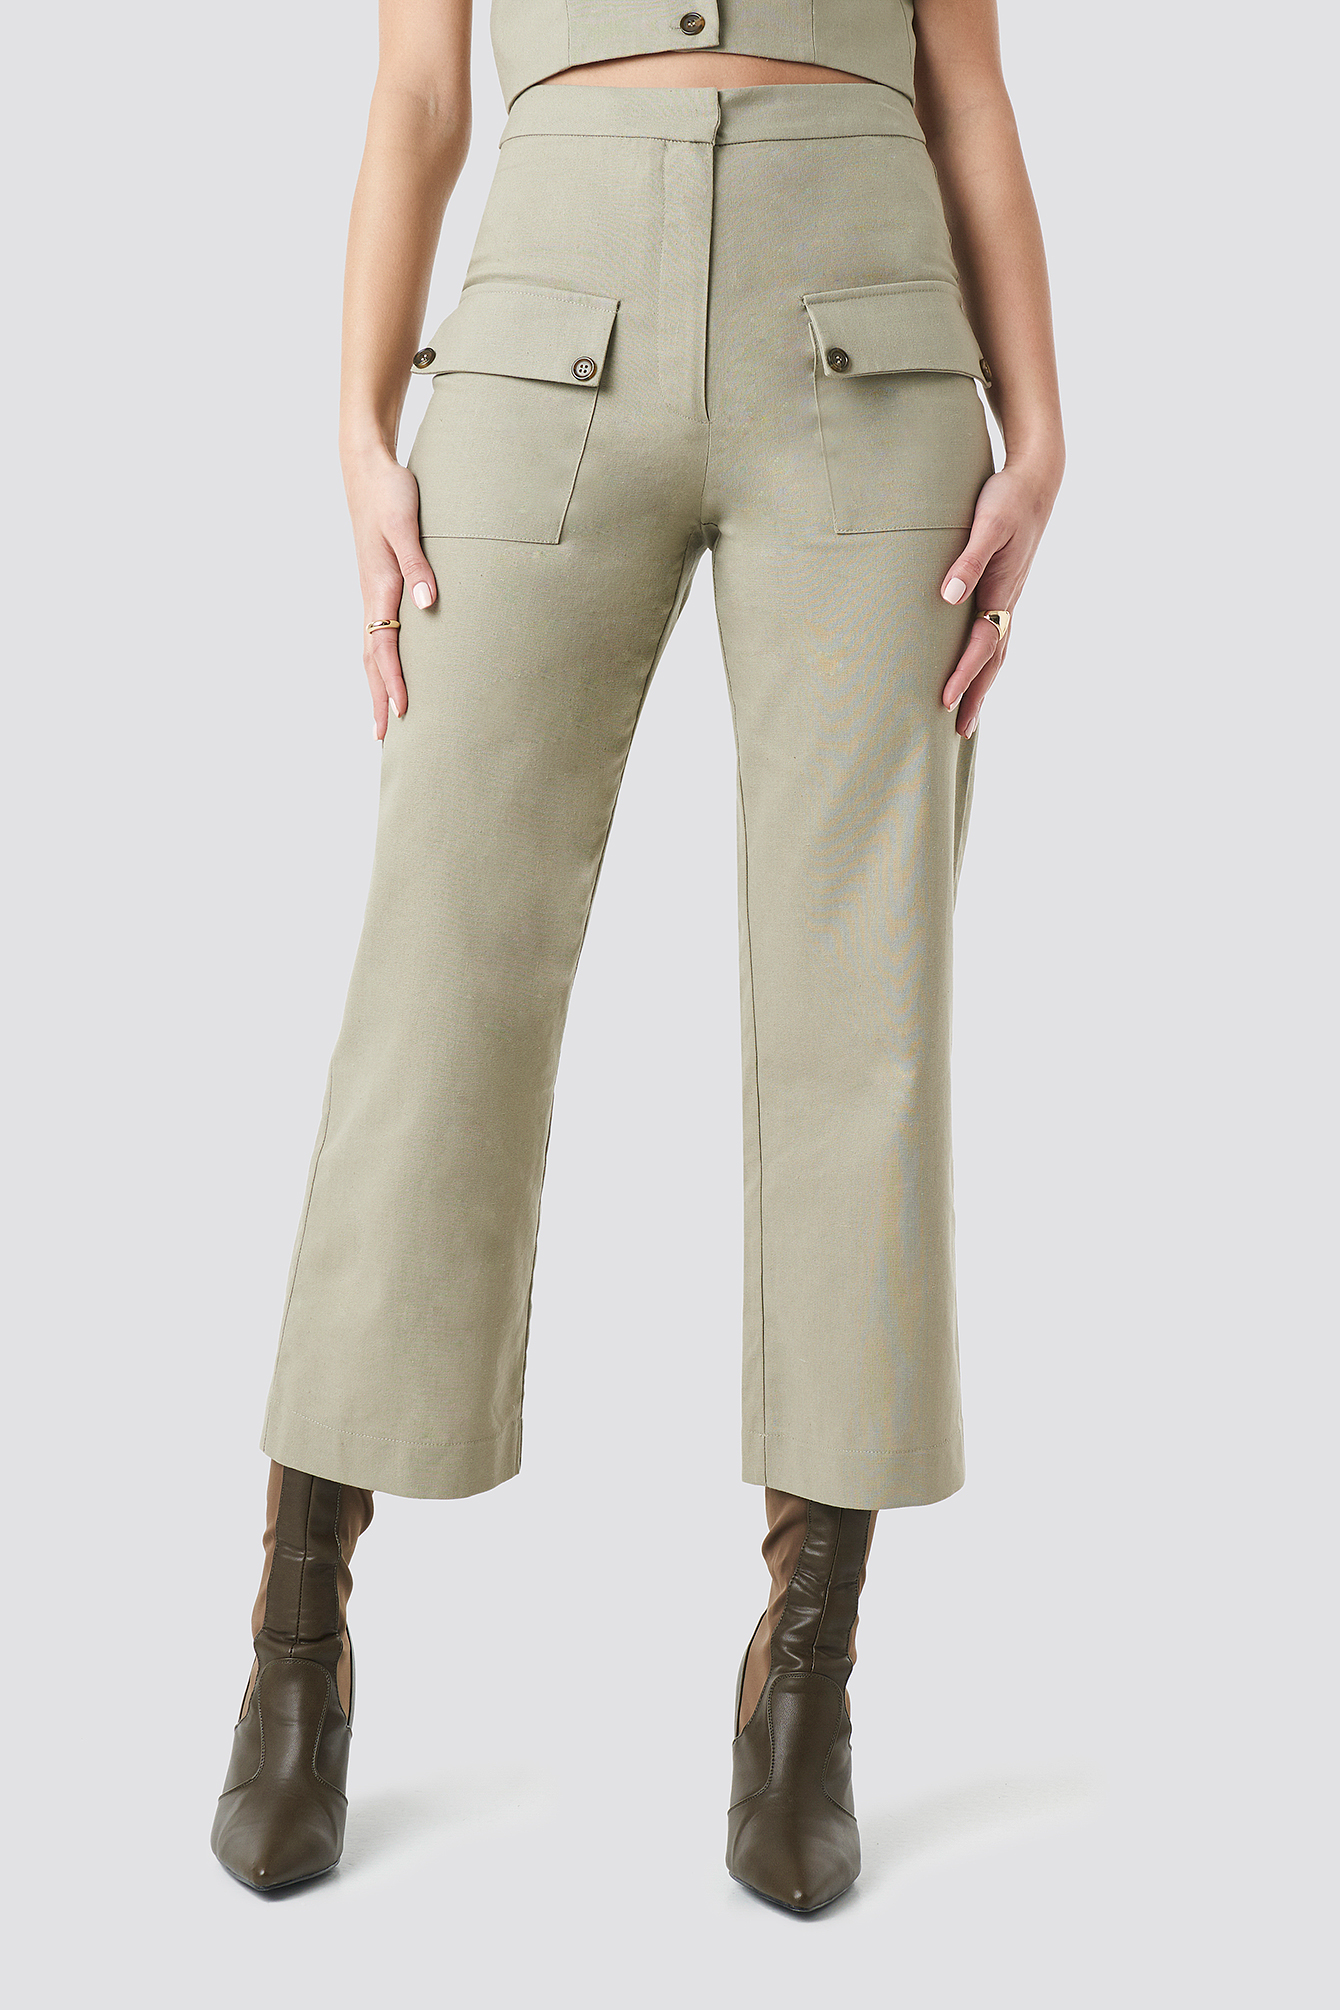 Beige Linen Look Front Pocket Cargo Pants